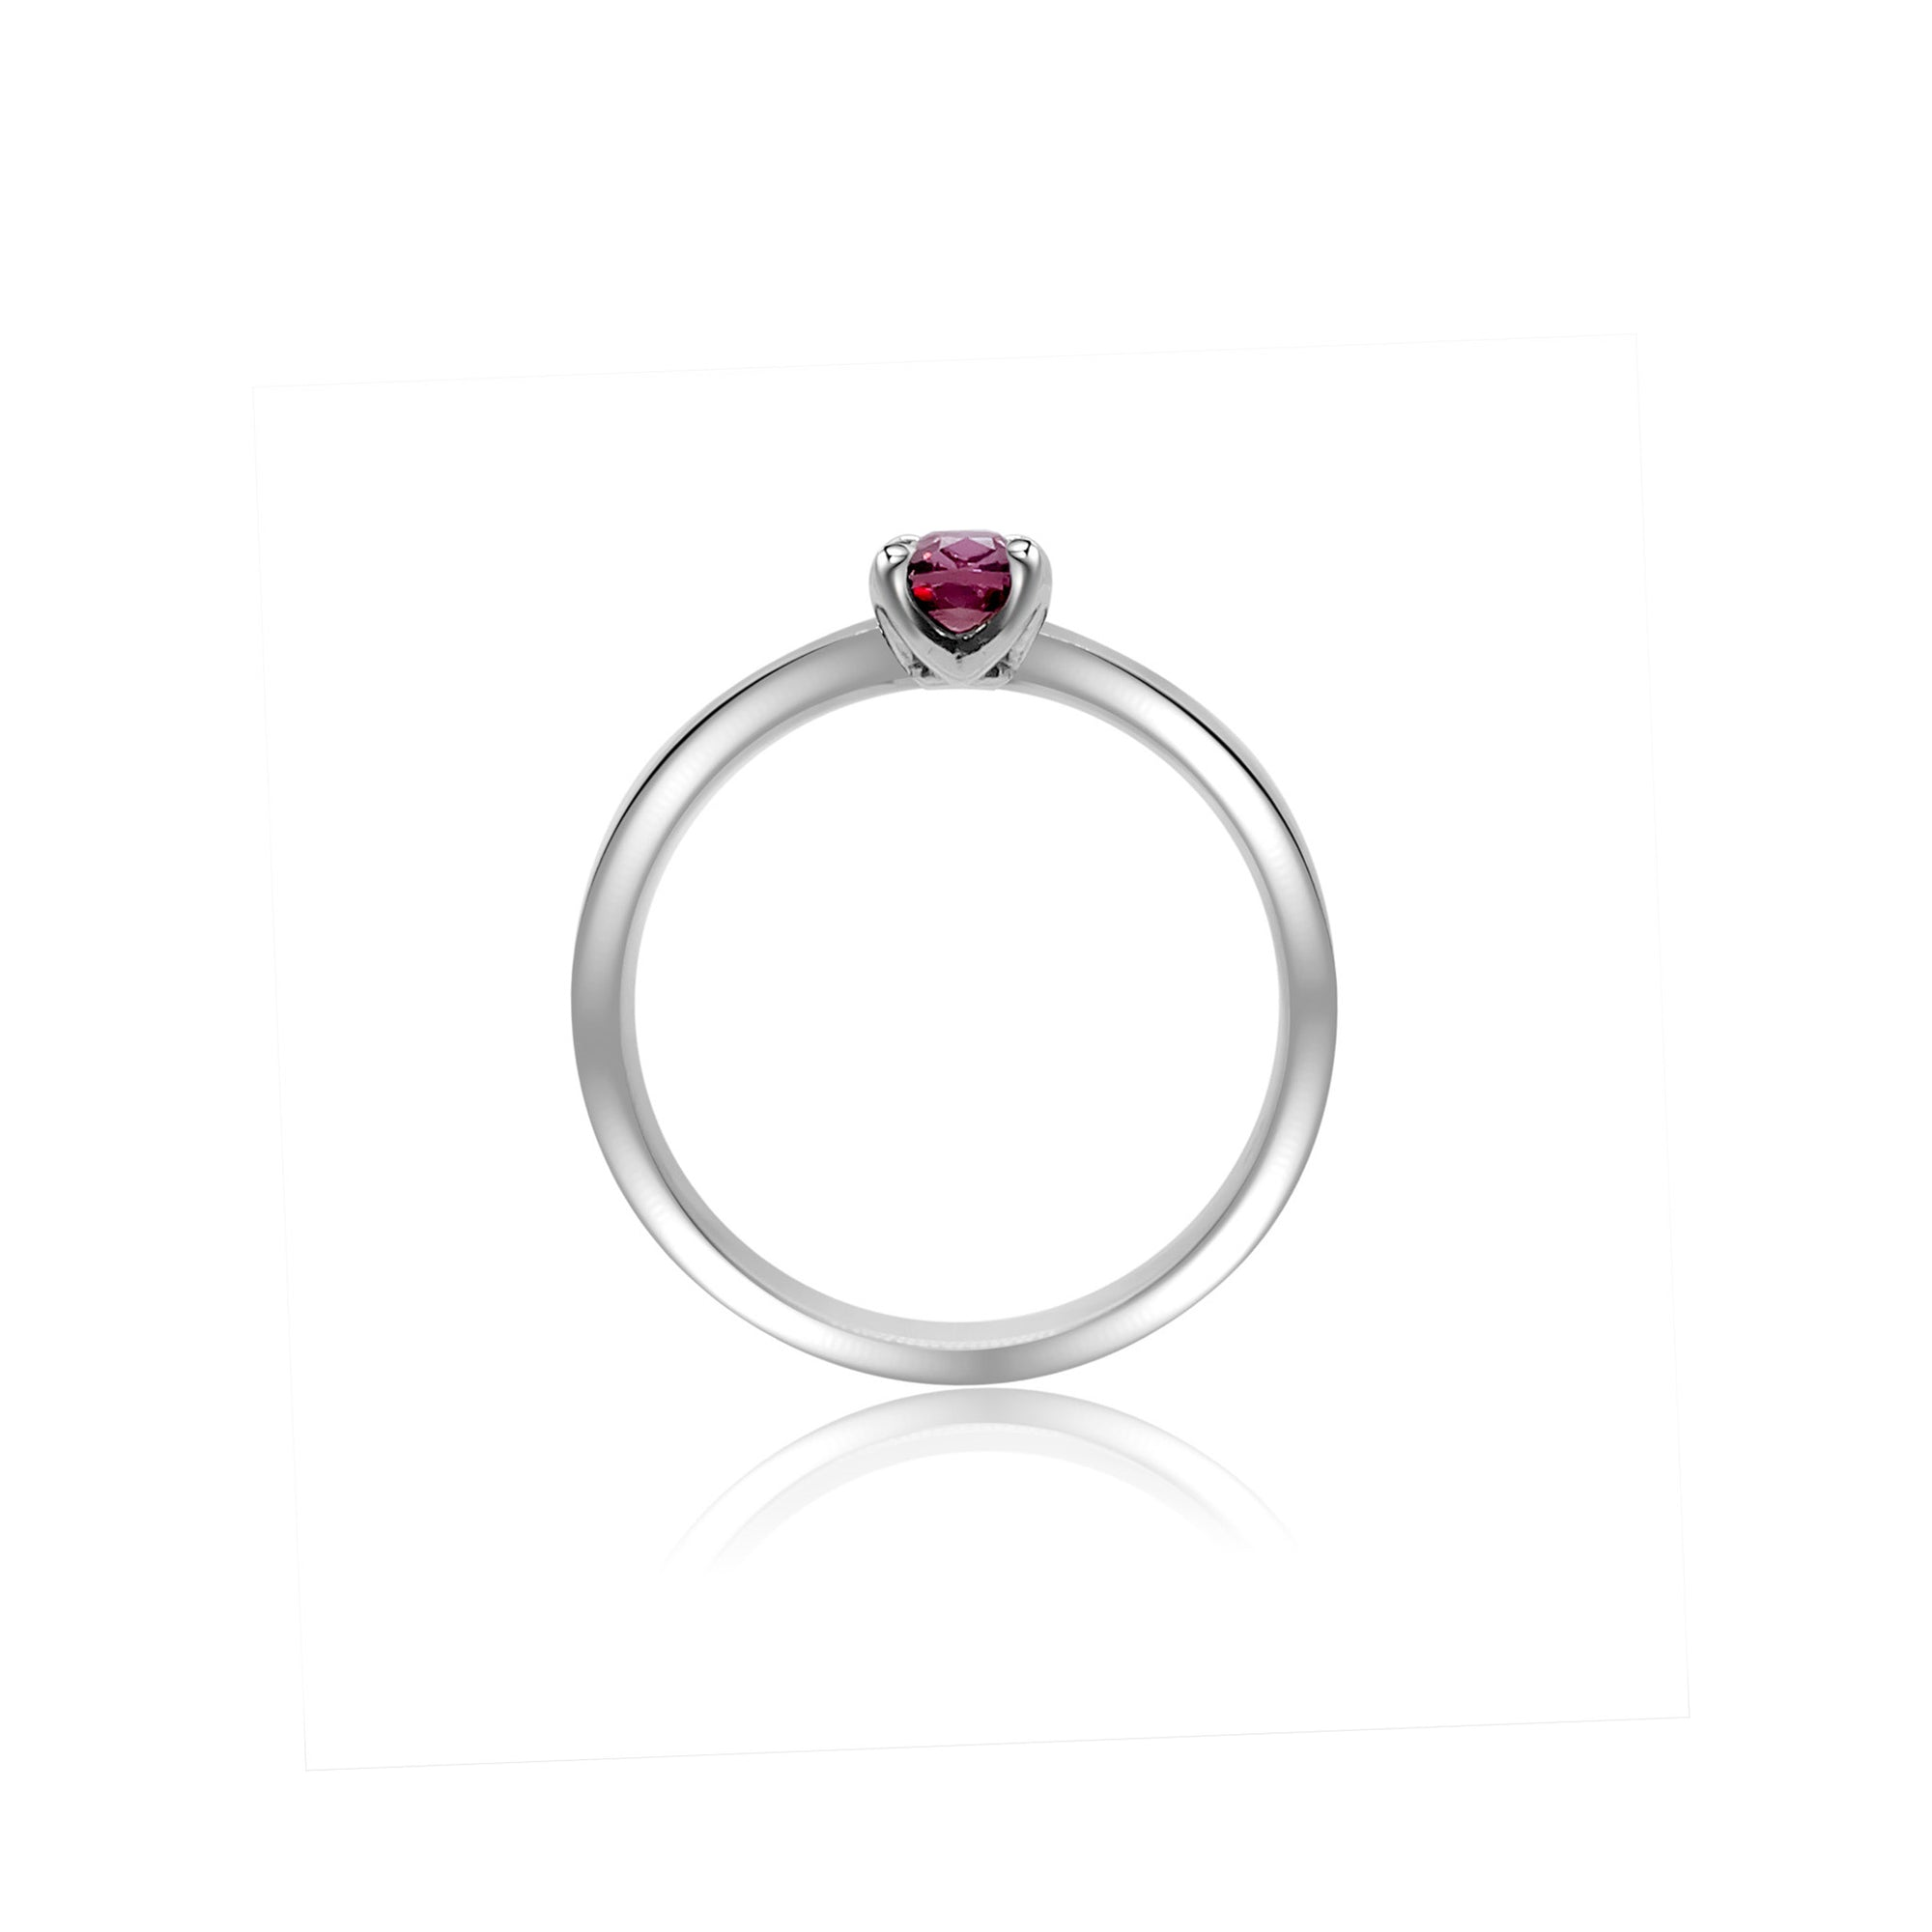 Cyntha Solitaire Pinched Shank Ring - Pink Long Cushion 2021-015